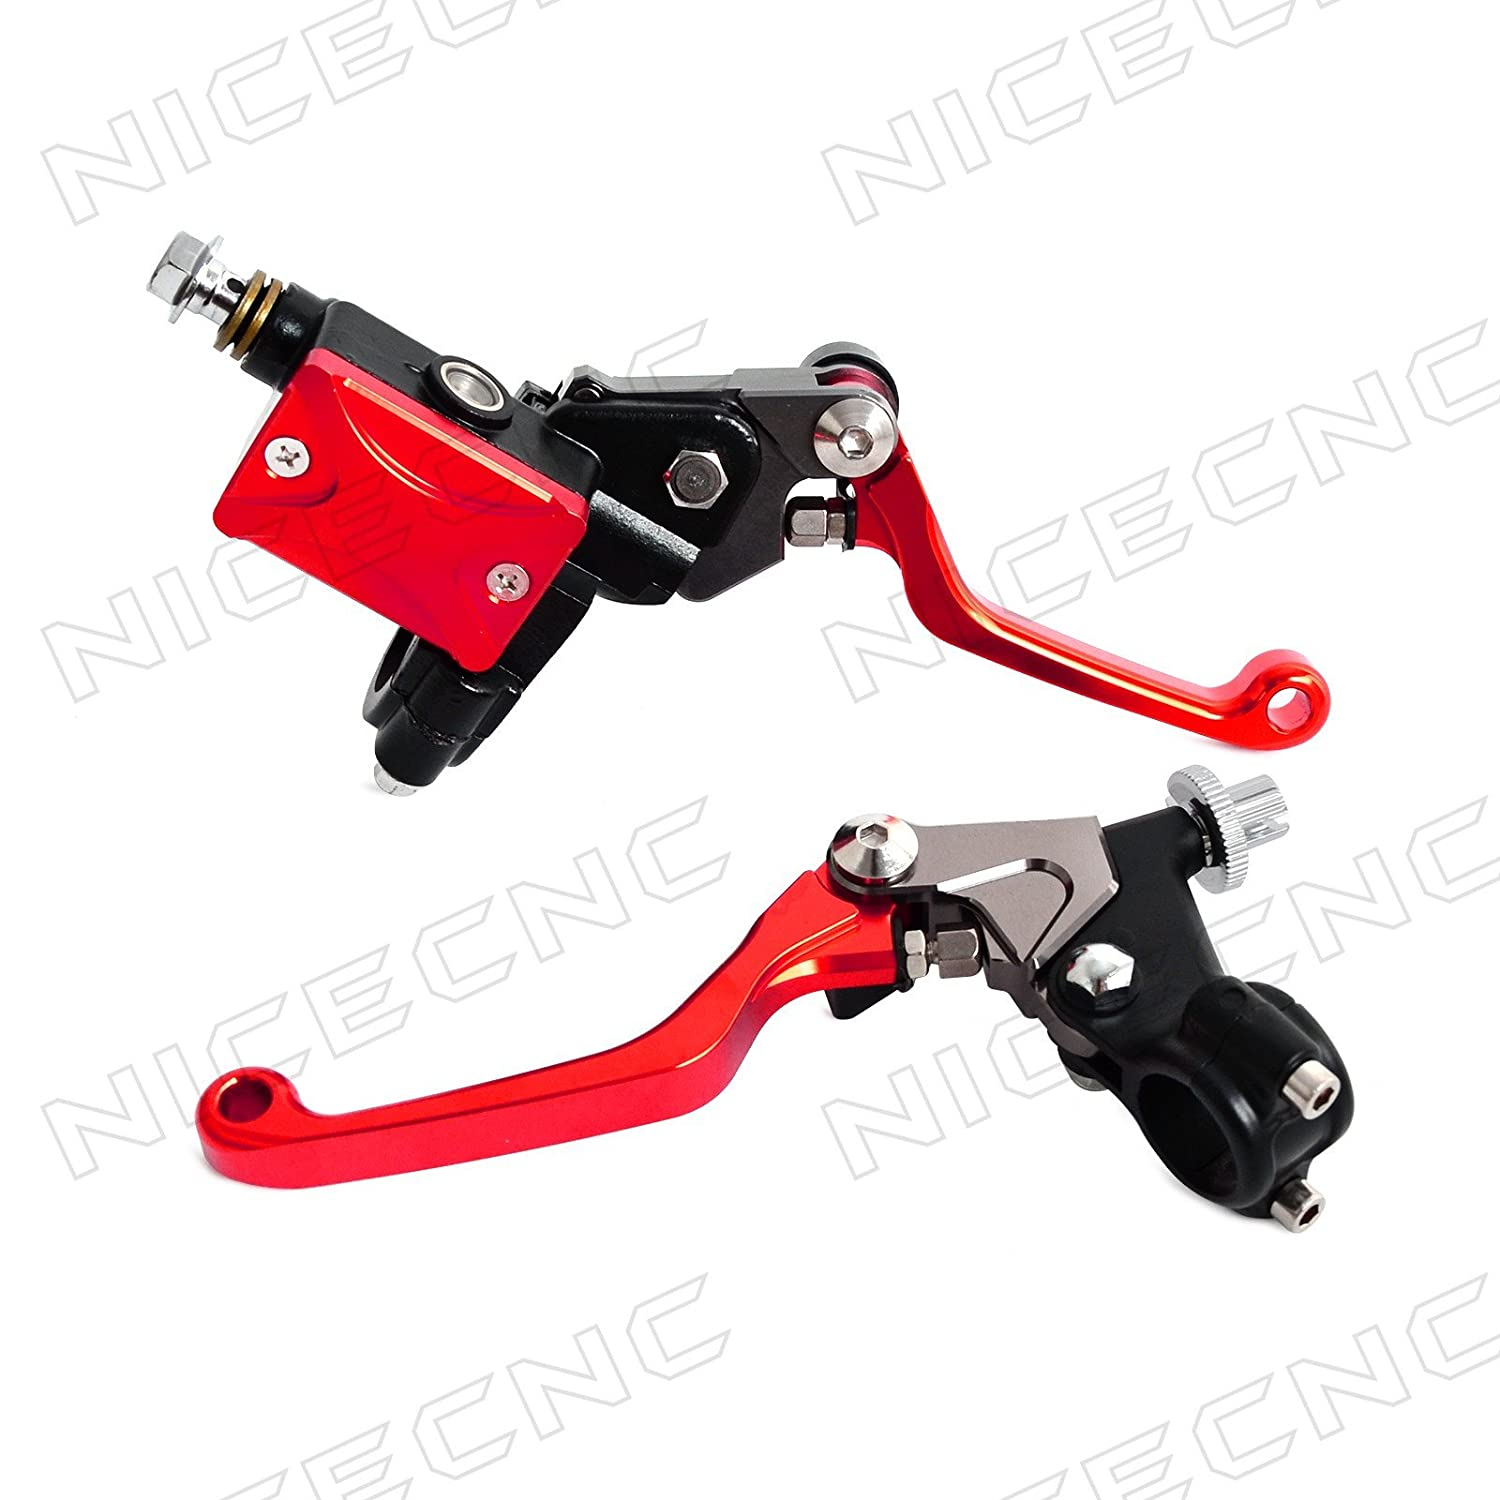 NICECNC Titanium 7/8'(22mm) Universal Motorcycle Hydraulic Brake & Cable Clutch Lever Set Assembly with CNC Brake Fluid Reservoir Cap for 125-450cc Dirt Bikes MX Motocross Enduro Enduro Off-road